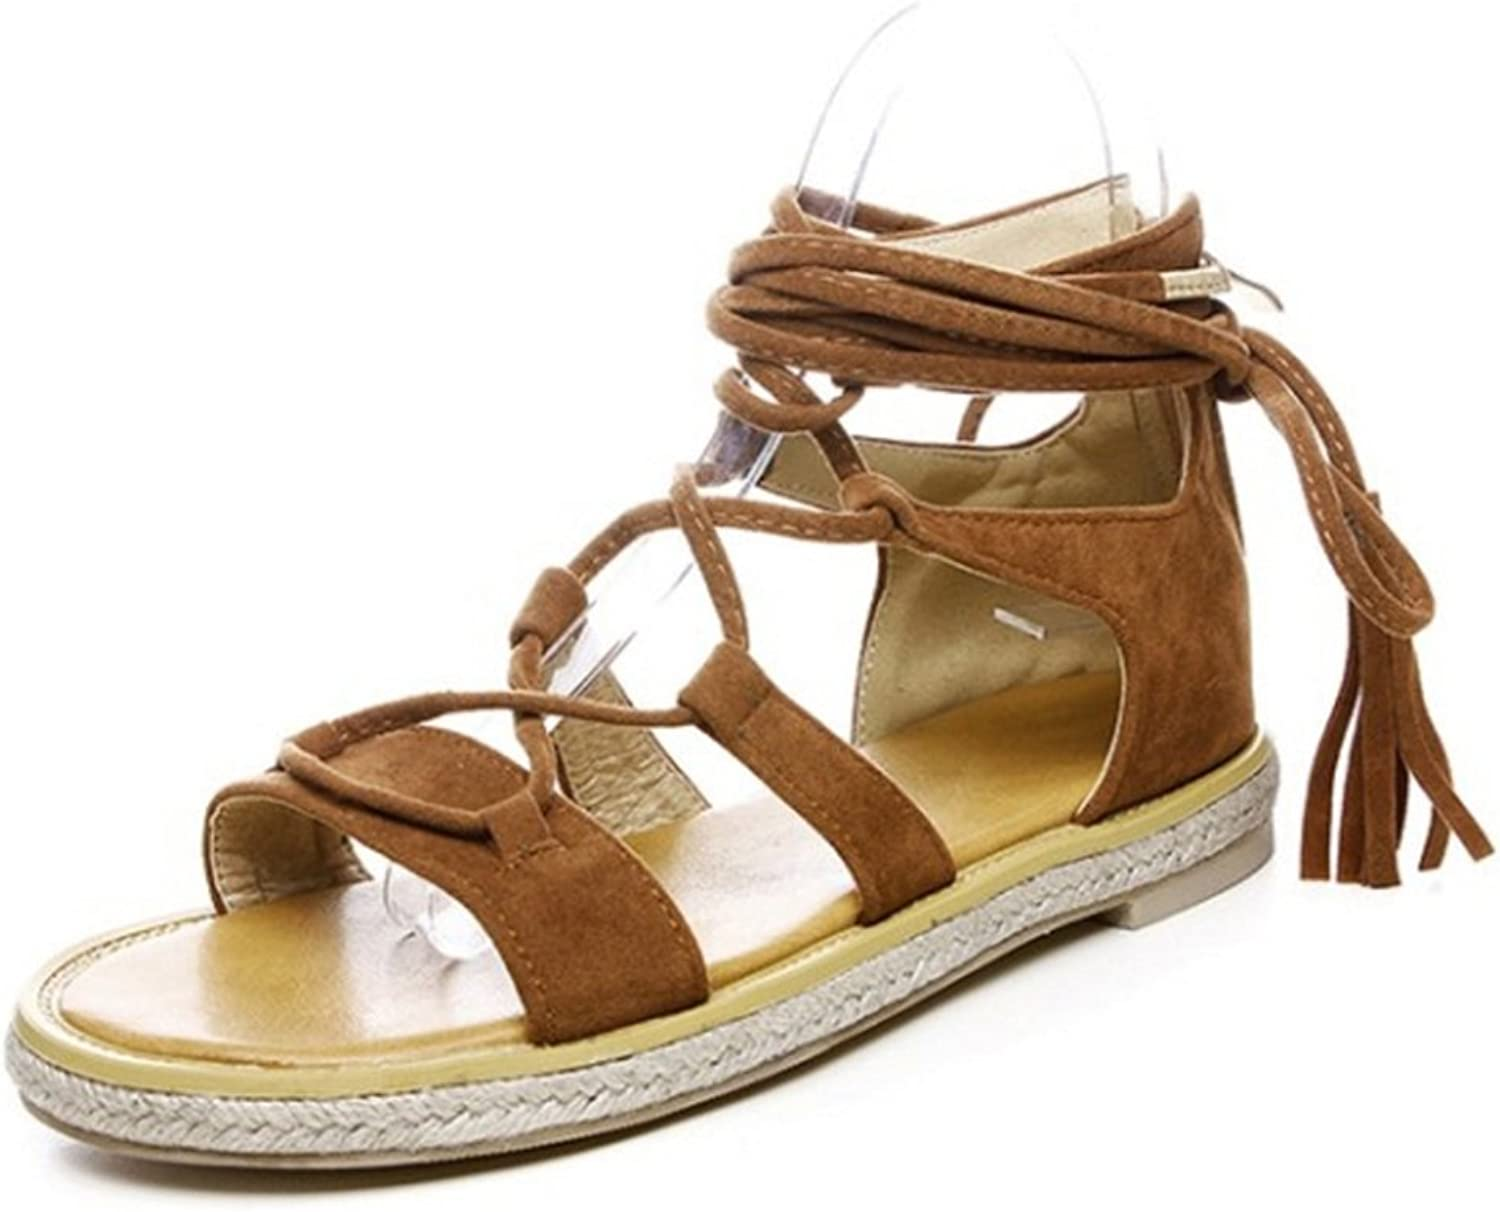 CuteFlats Roman Sandals with Flats and Lace Up for Fashion Women